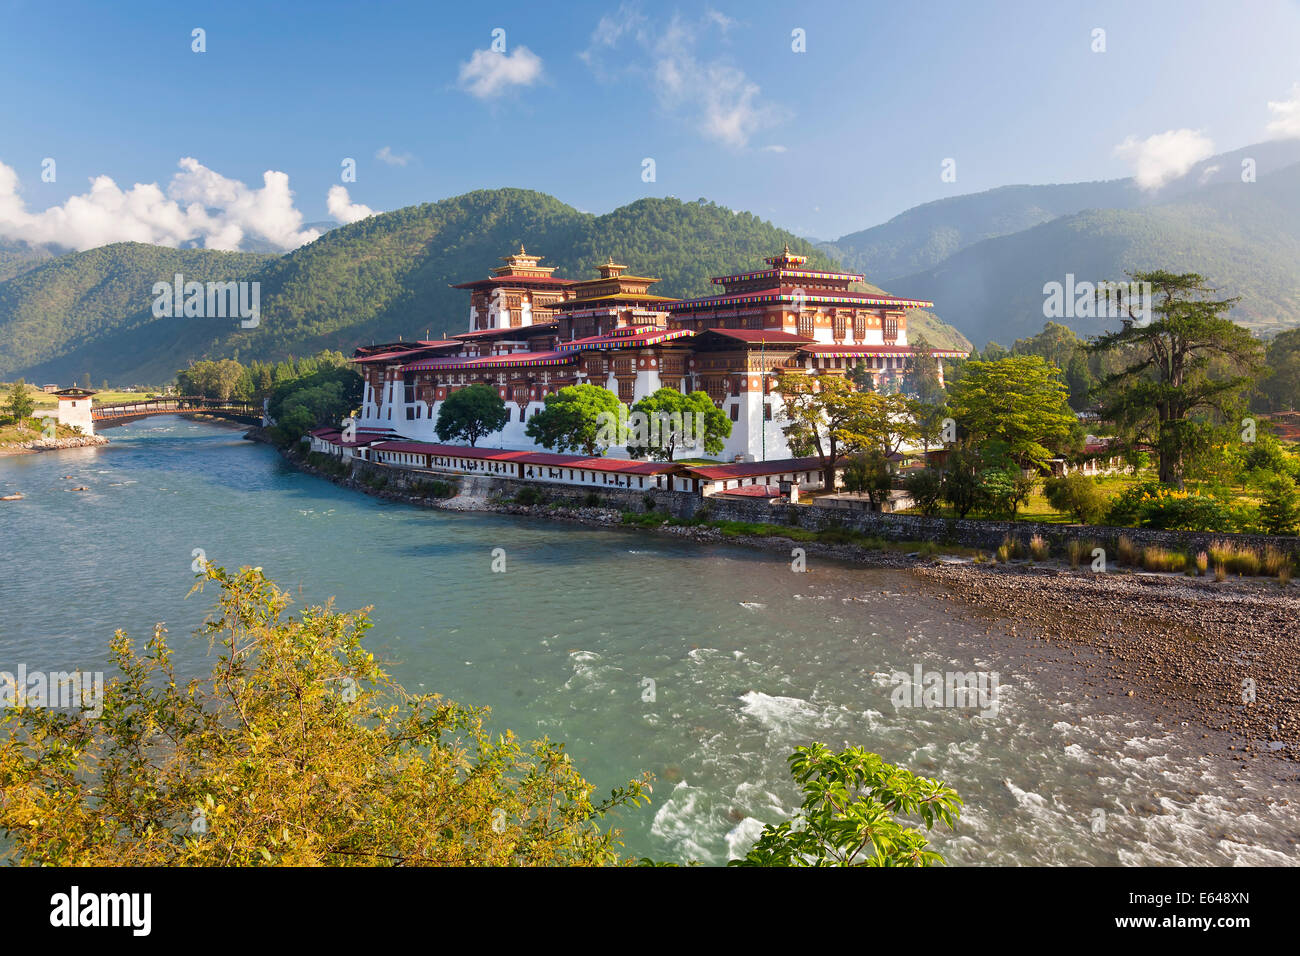 Punakha Dzong or monastery, Punakha, Bhutan Stock Photo